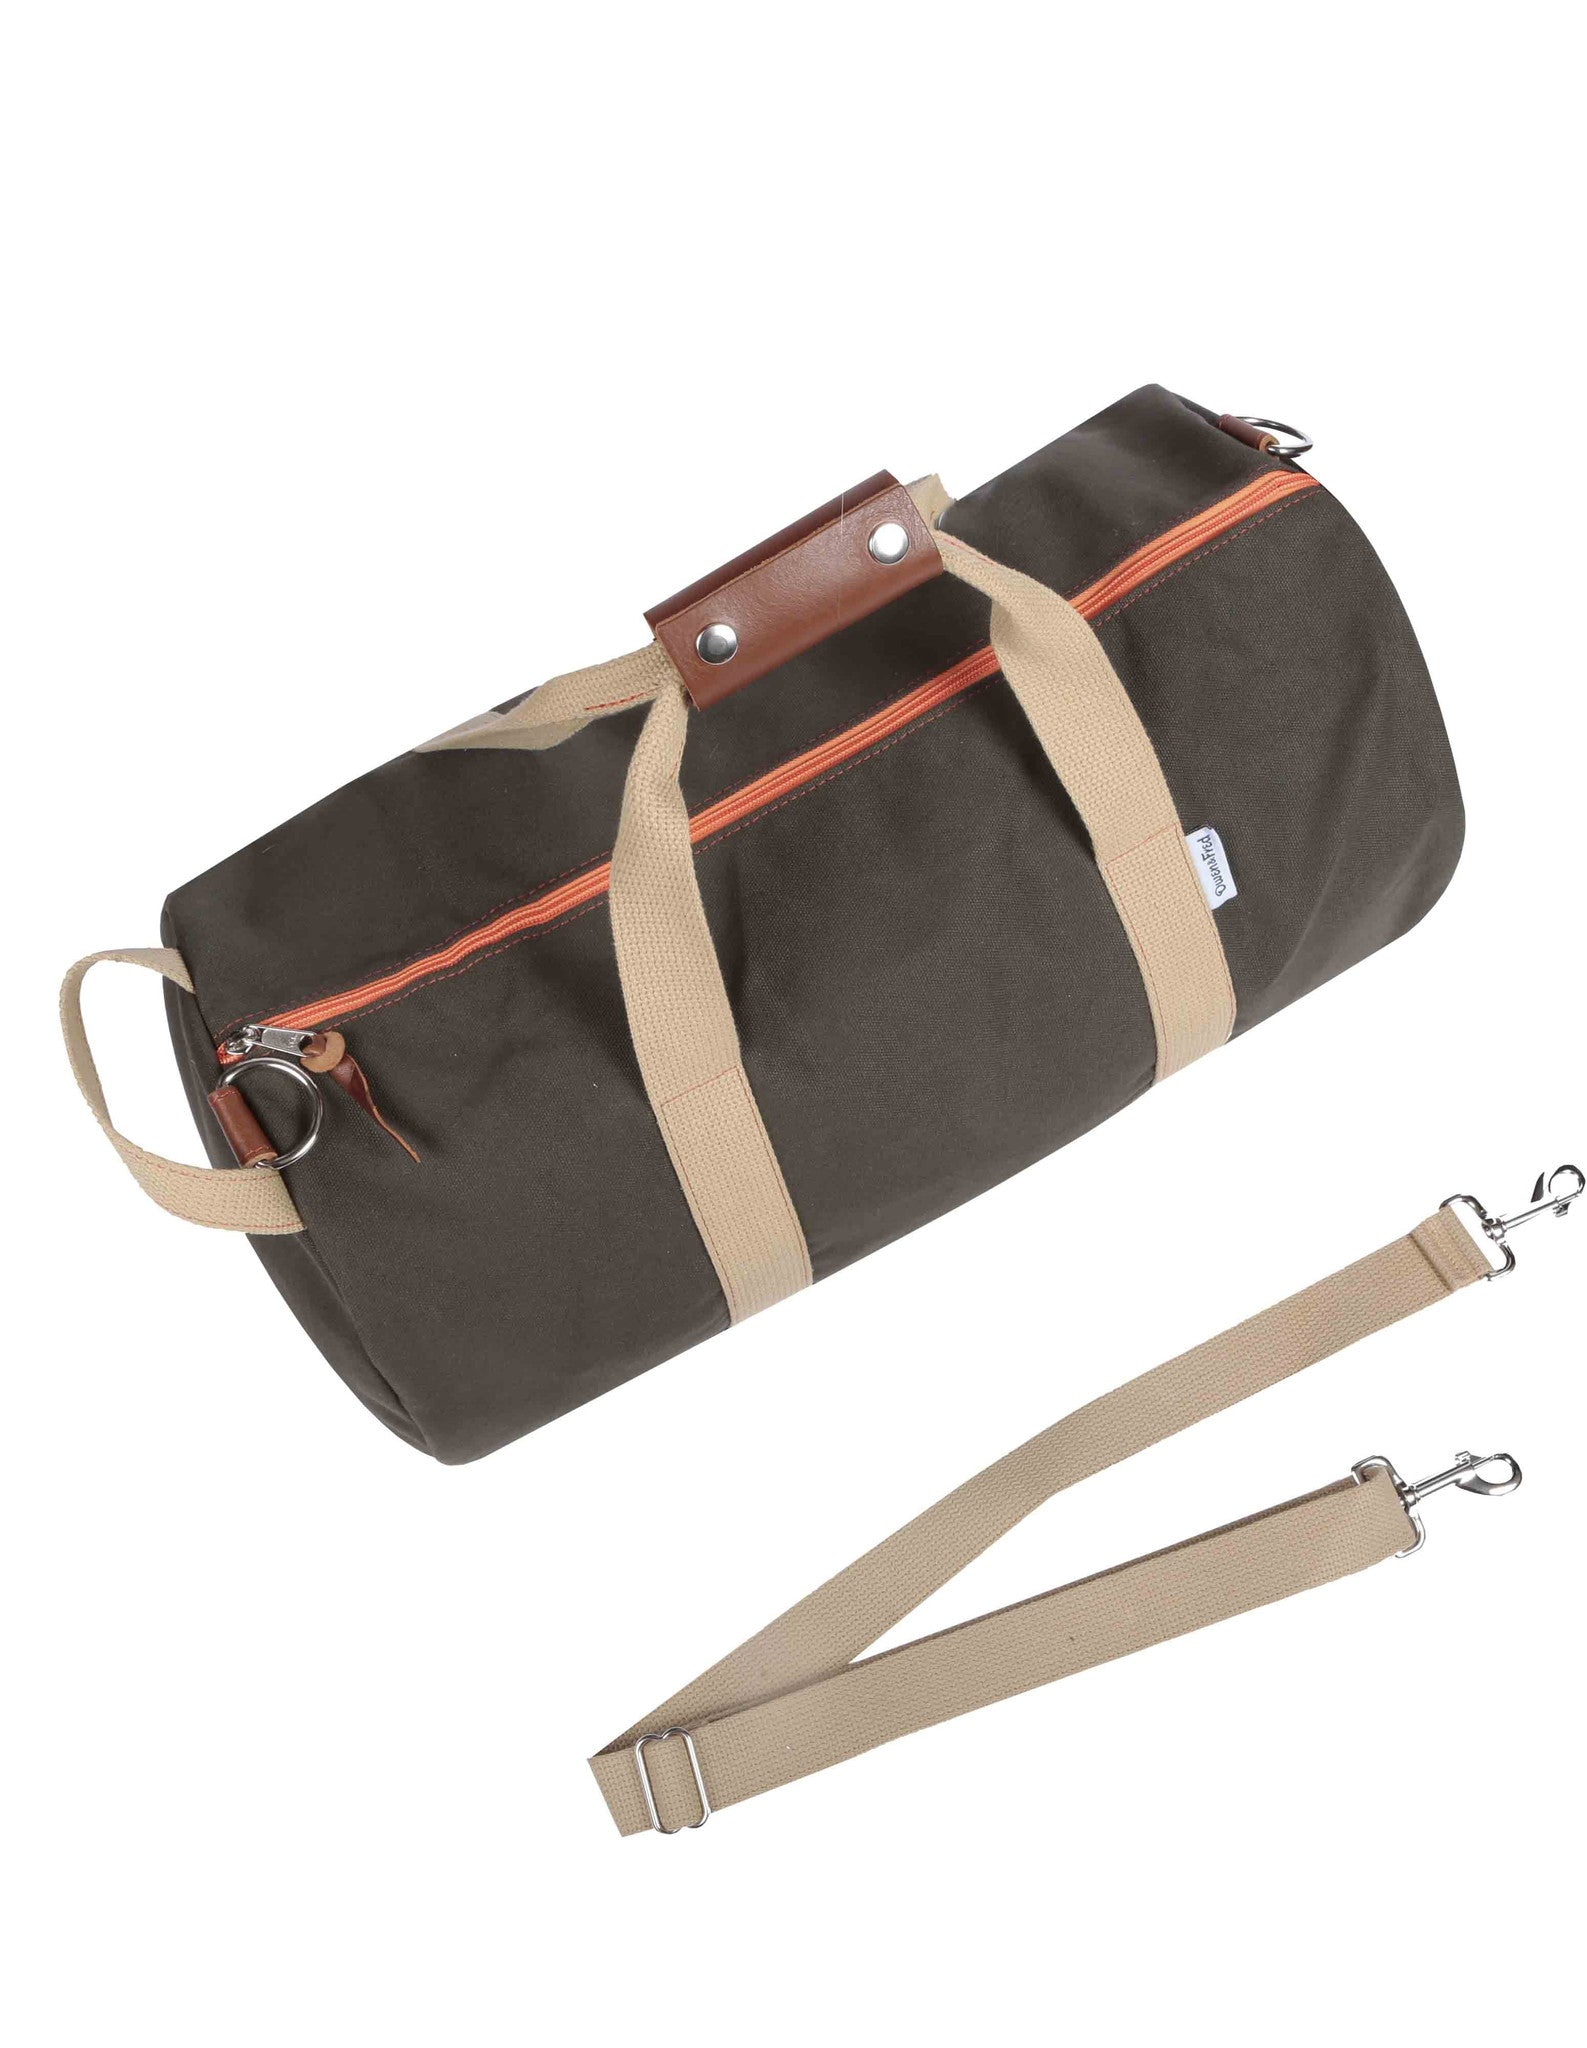 Top of Army Green Work Hard, Play Hard duffel bag by Owen & Fred